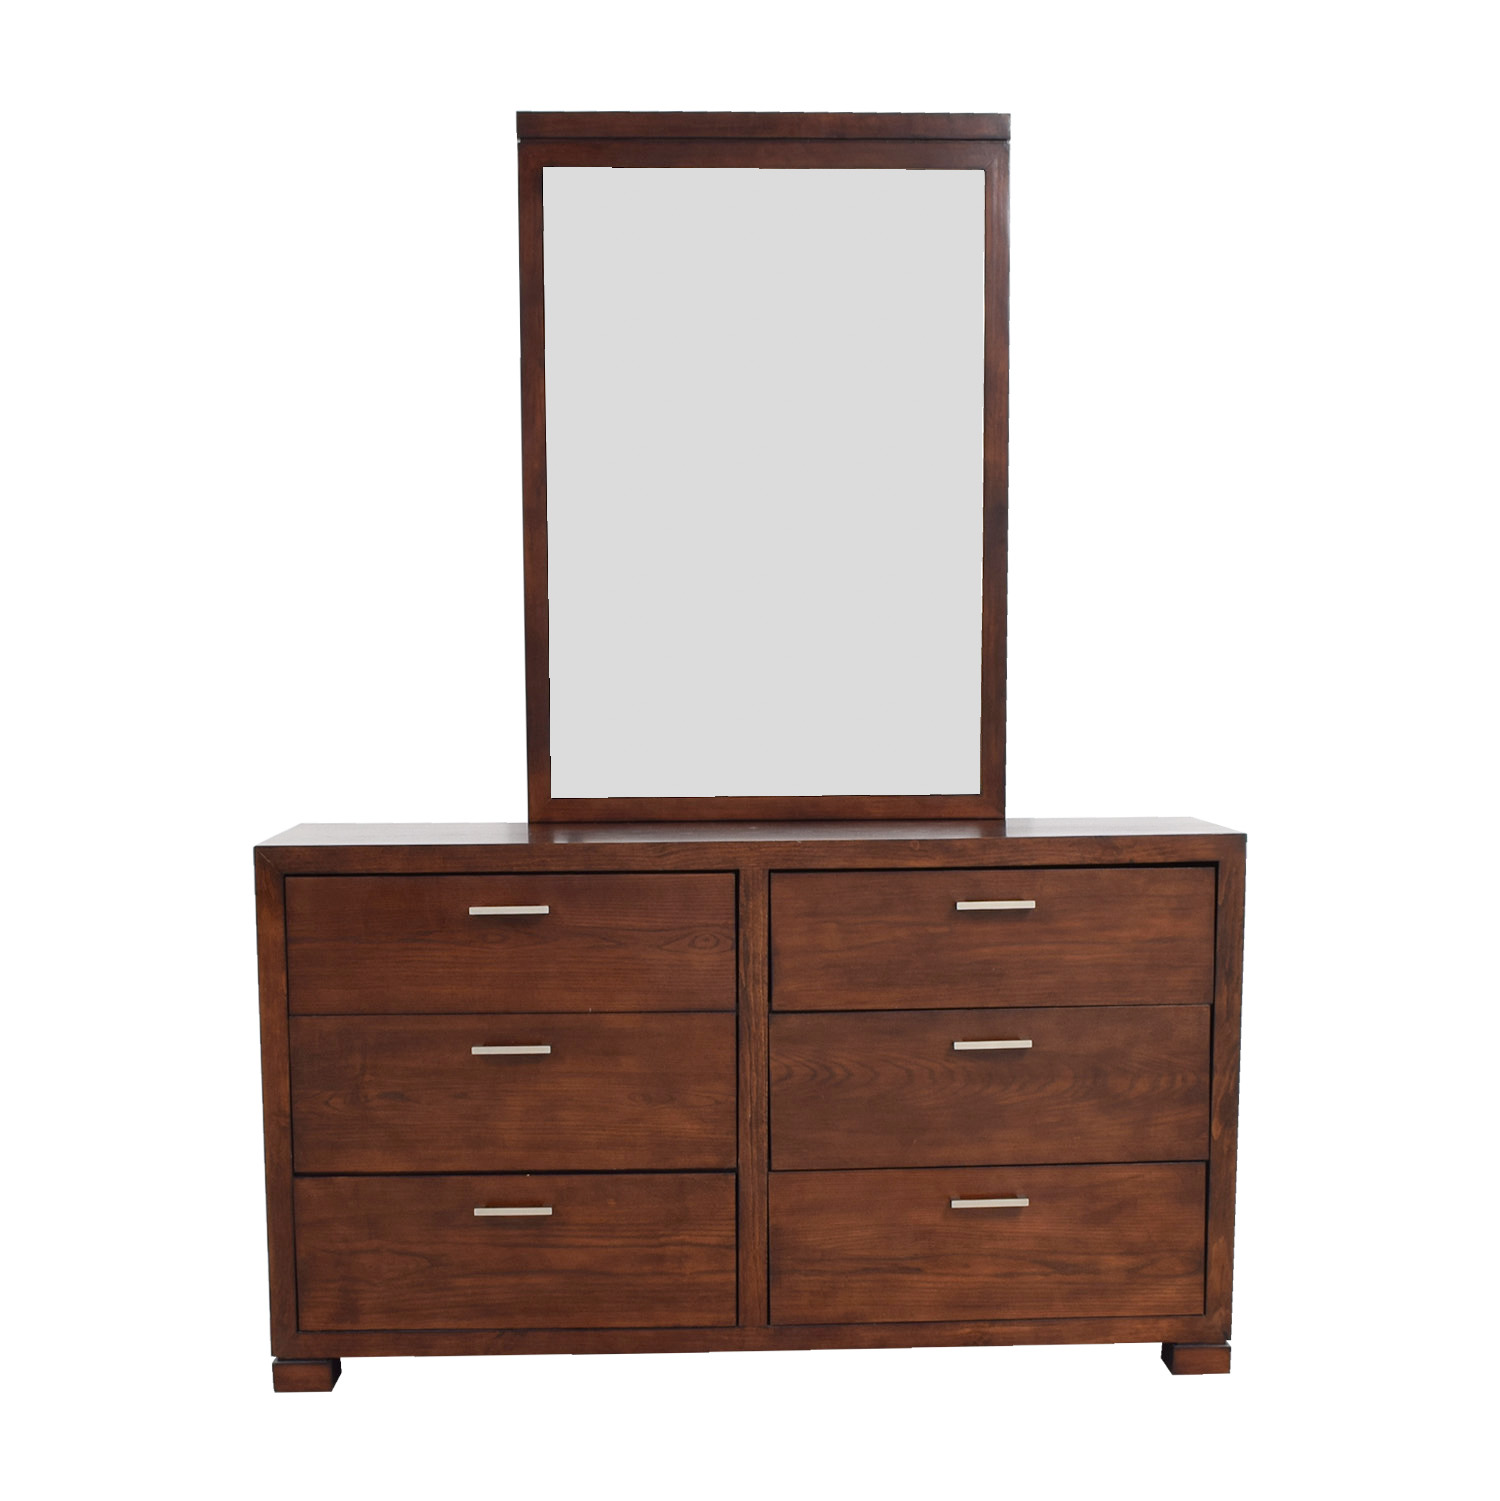 Macy S Six Drawer Dresser With Mirror Dressers